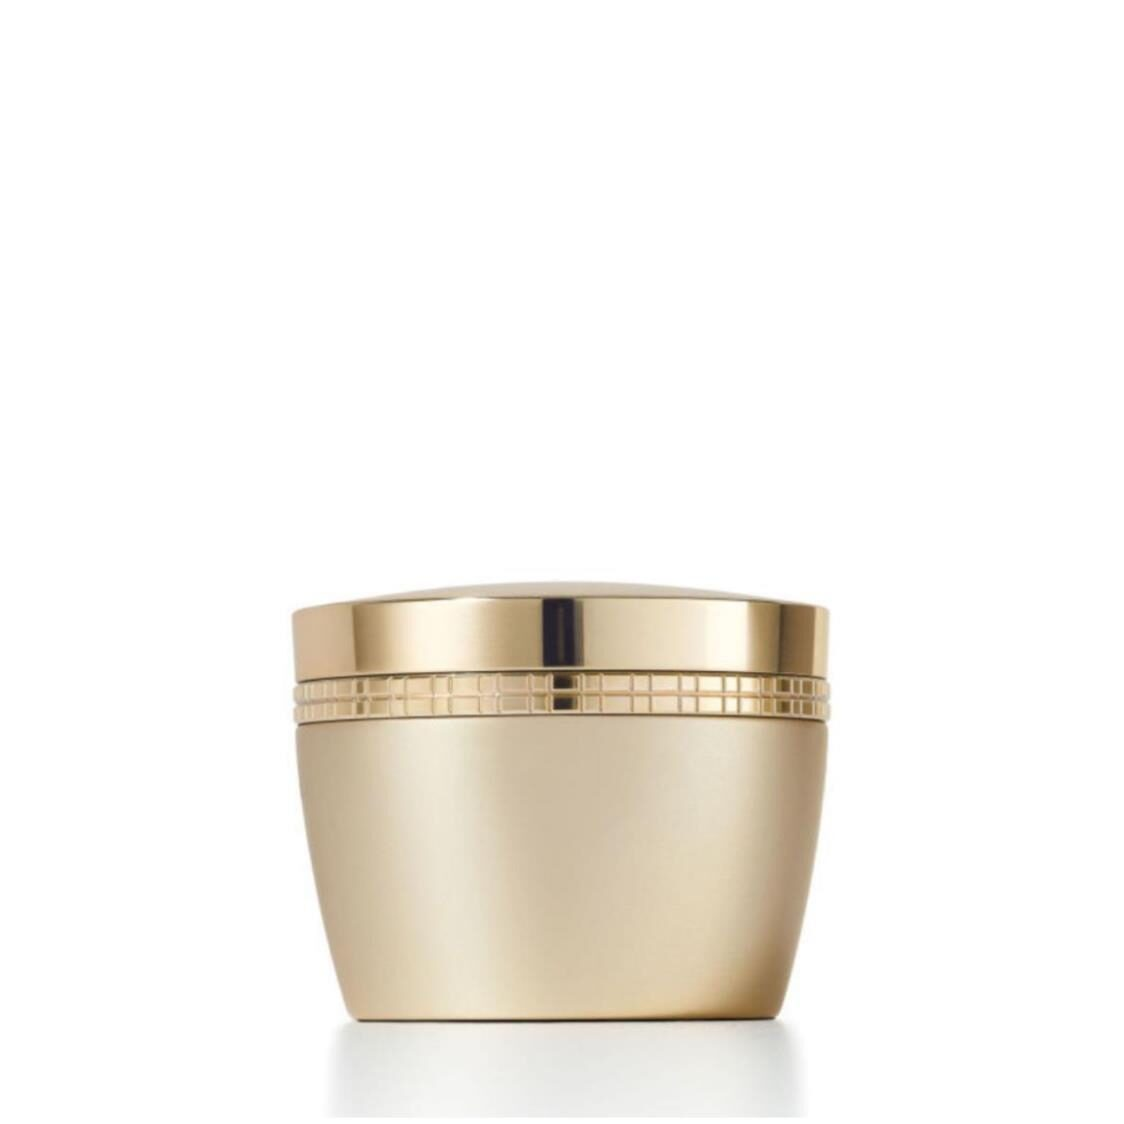 Ceramide Premiere Intense Moisture and Renewal Activation Cream